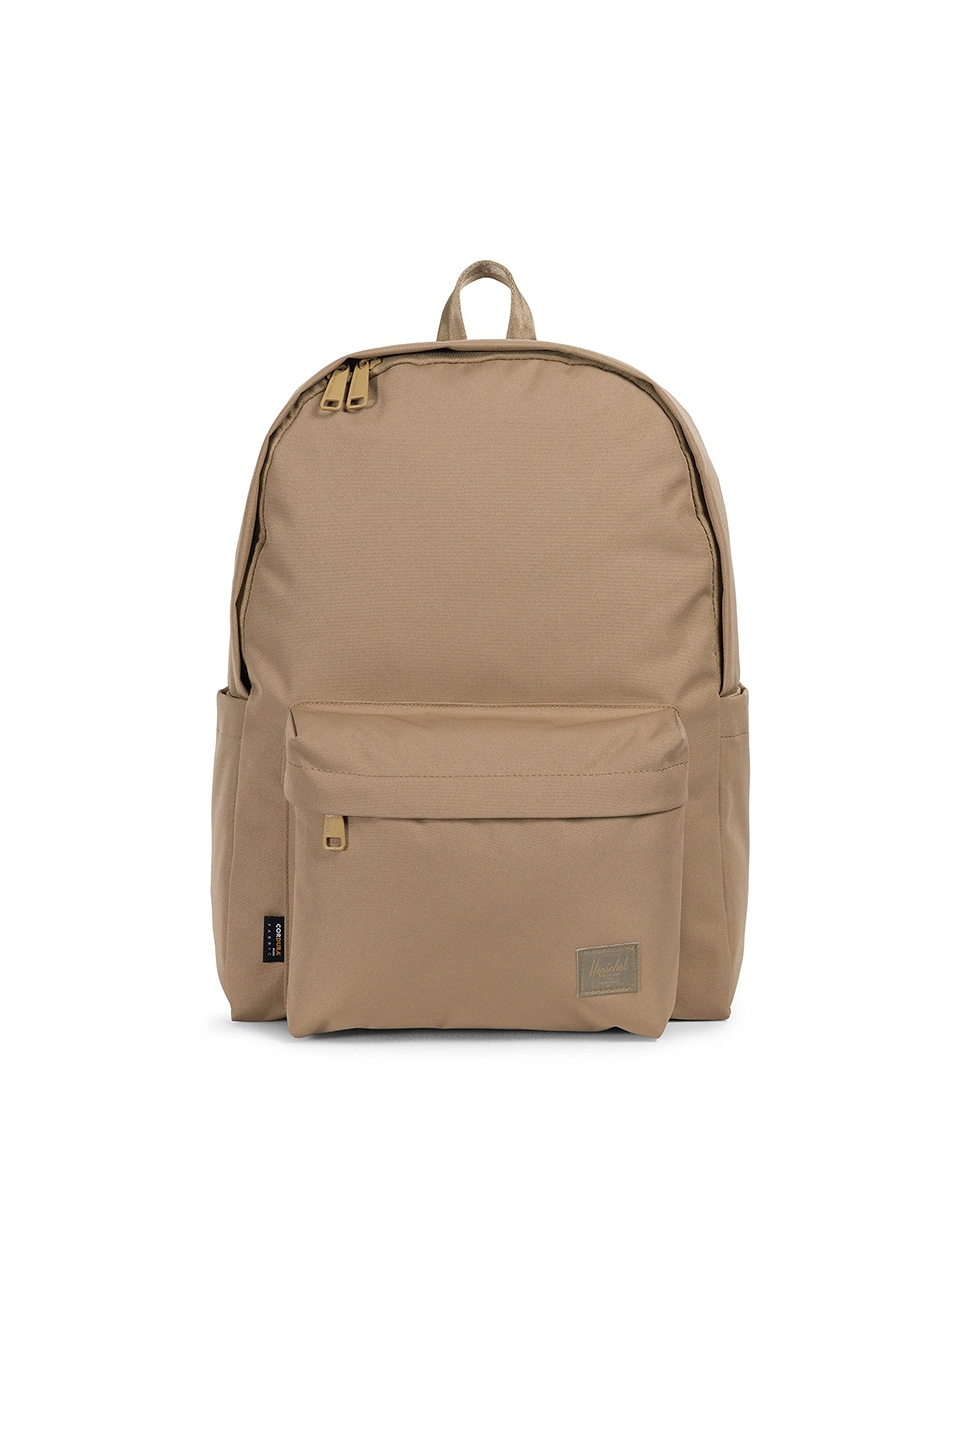 Berg Backpack - Beige in Brown